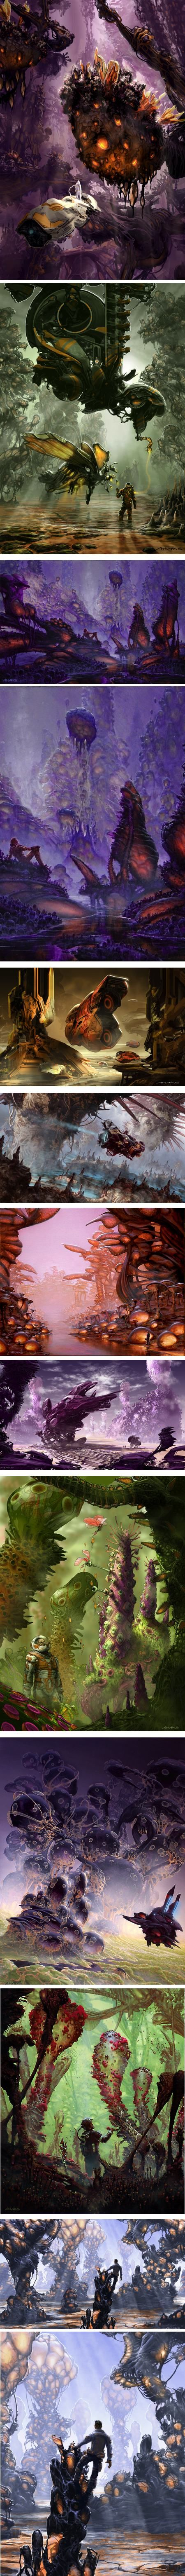 Arthur Haas, concept art and illustration